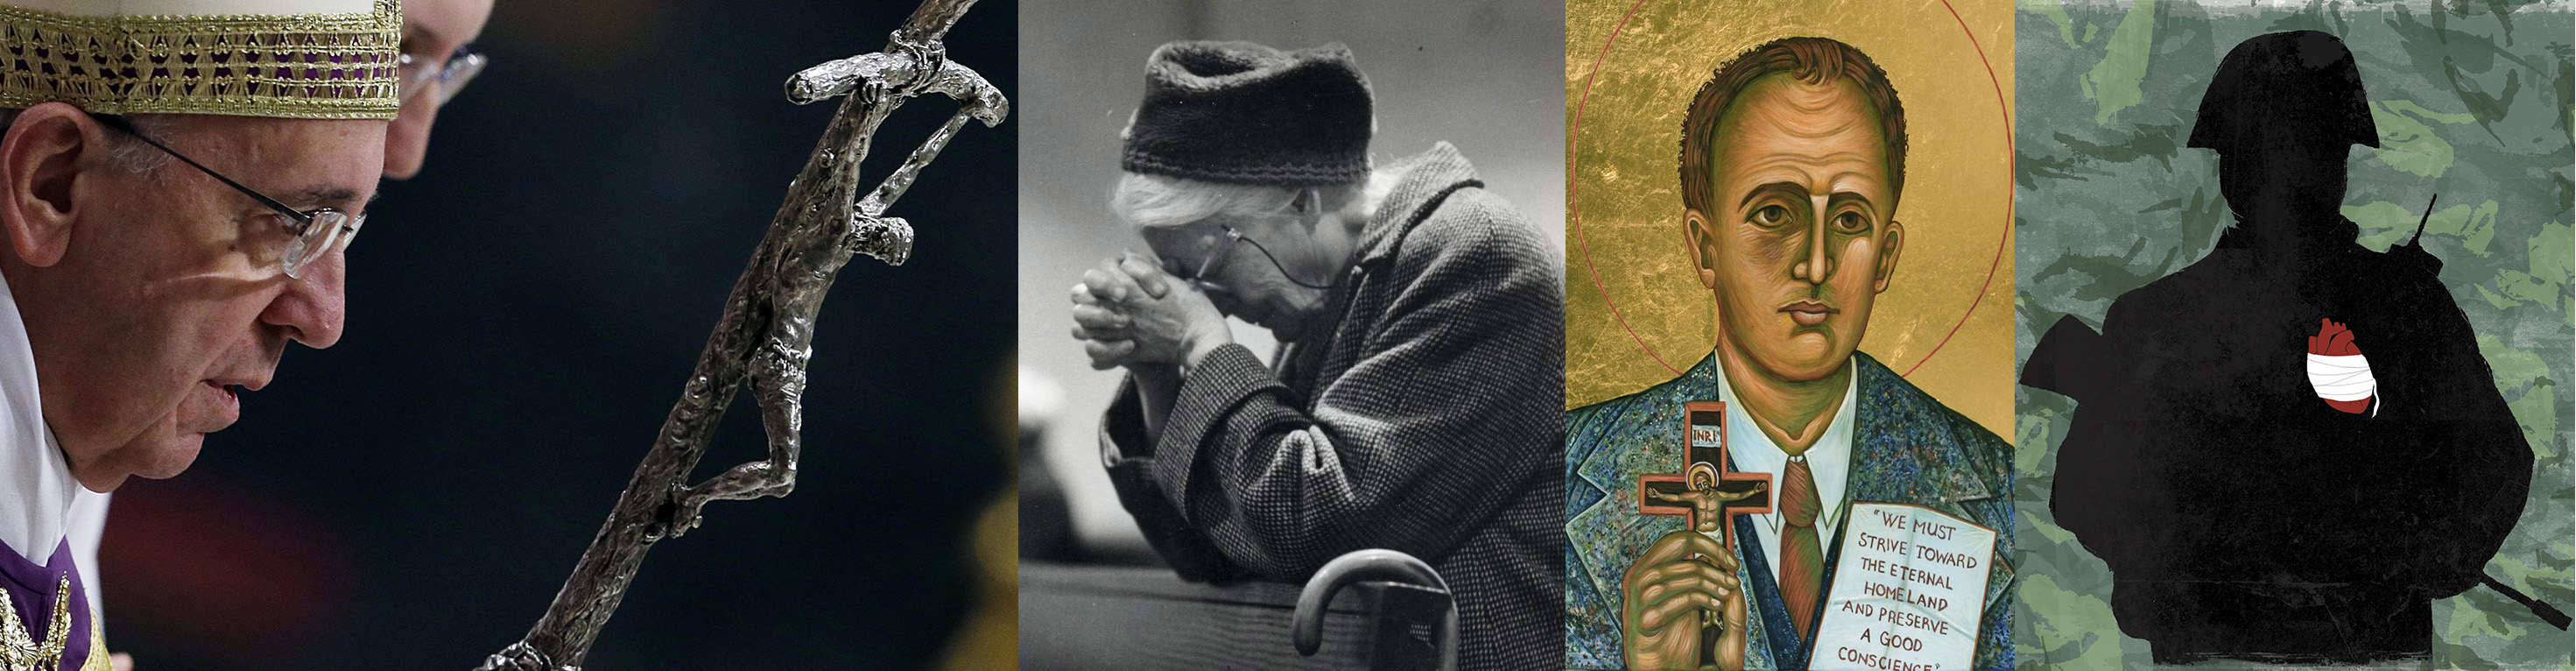 Pope Francis and Crucifix - Dorothy Day - Blessed Franz Jagerstatter - David's Heart